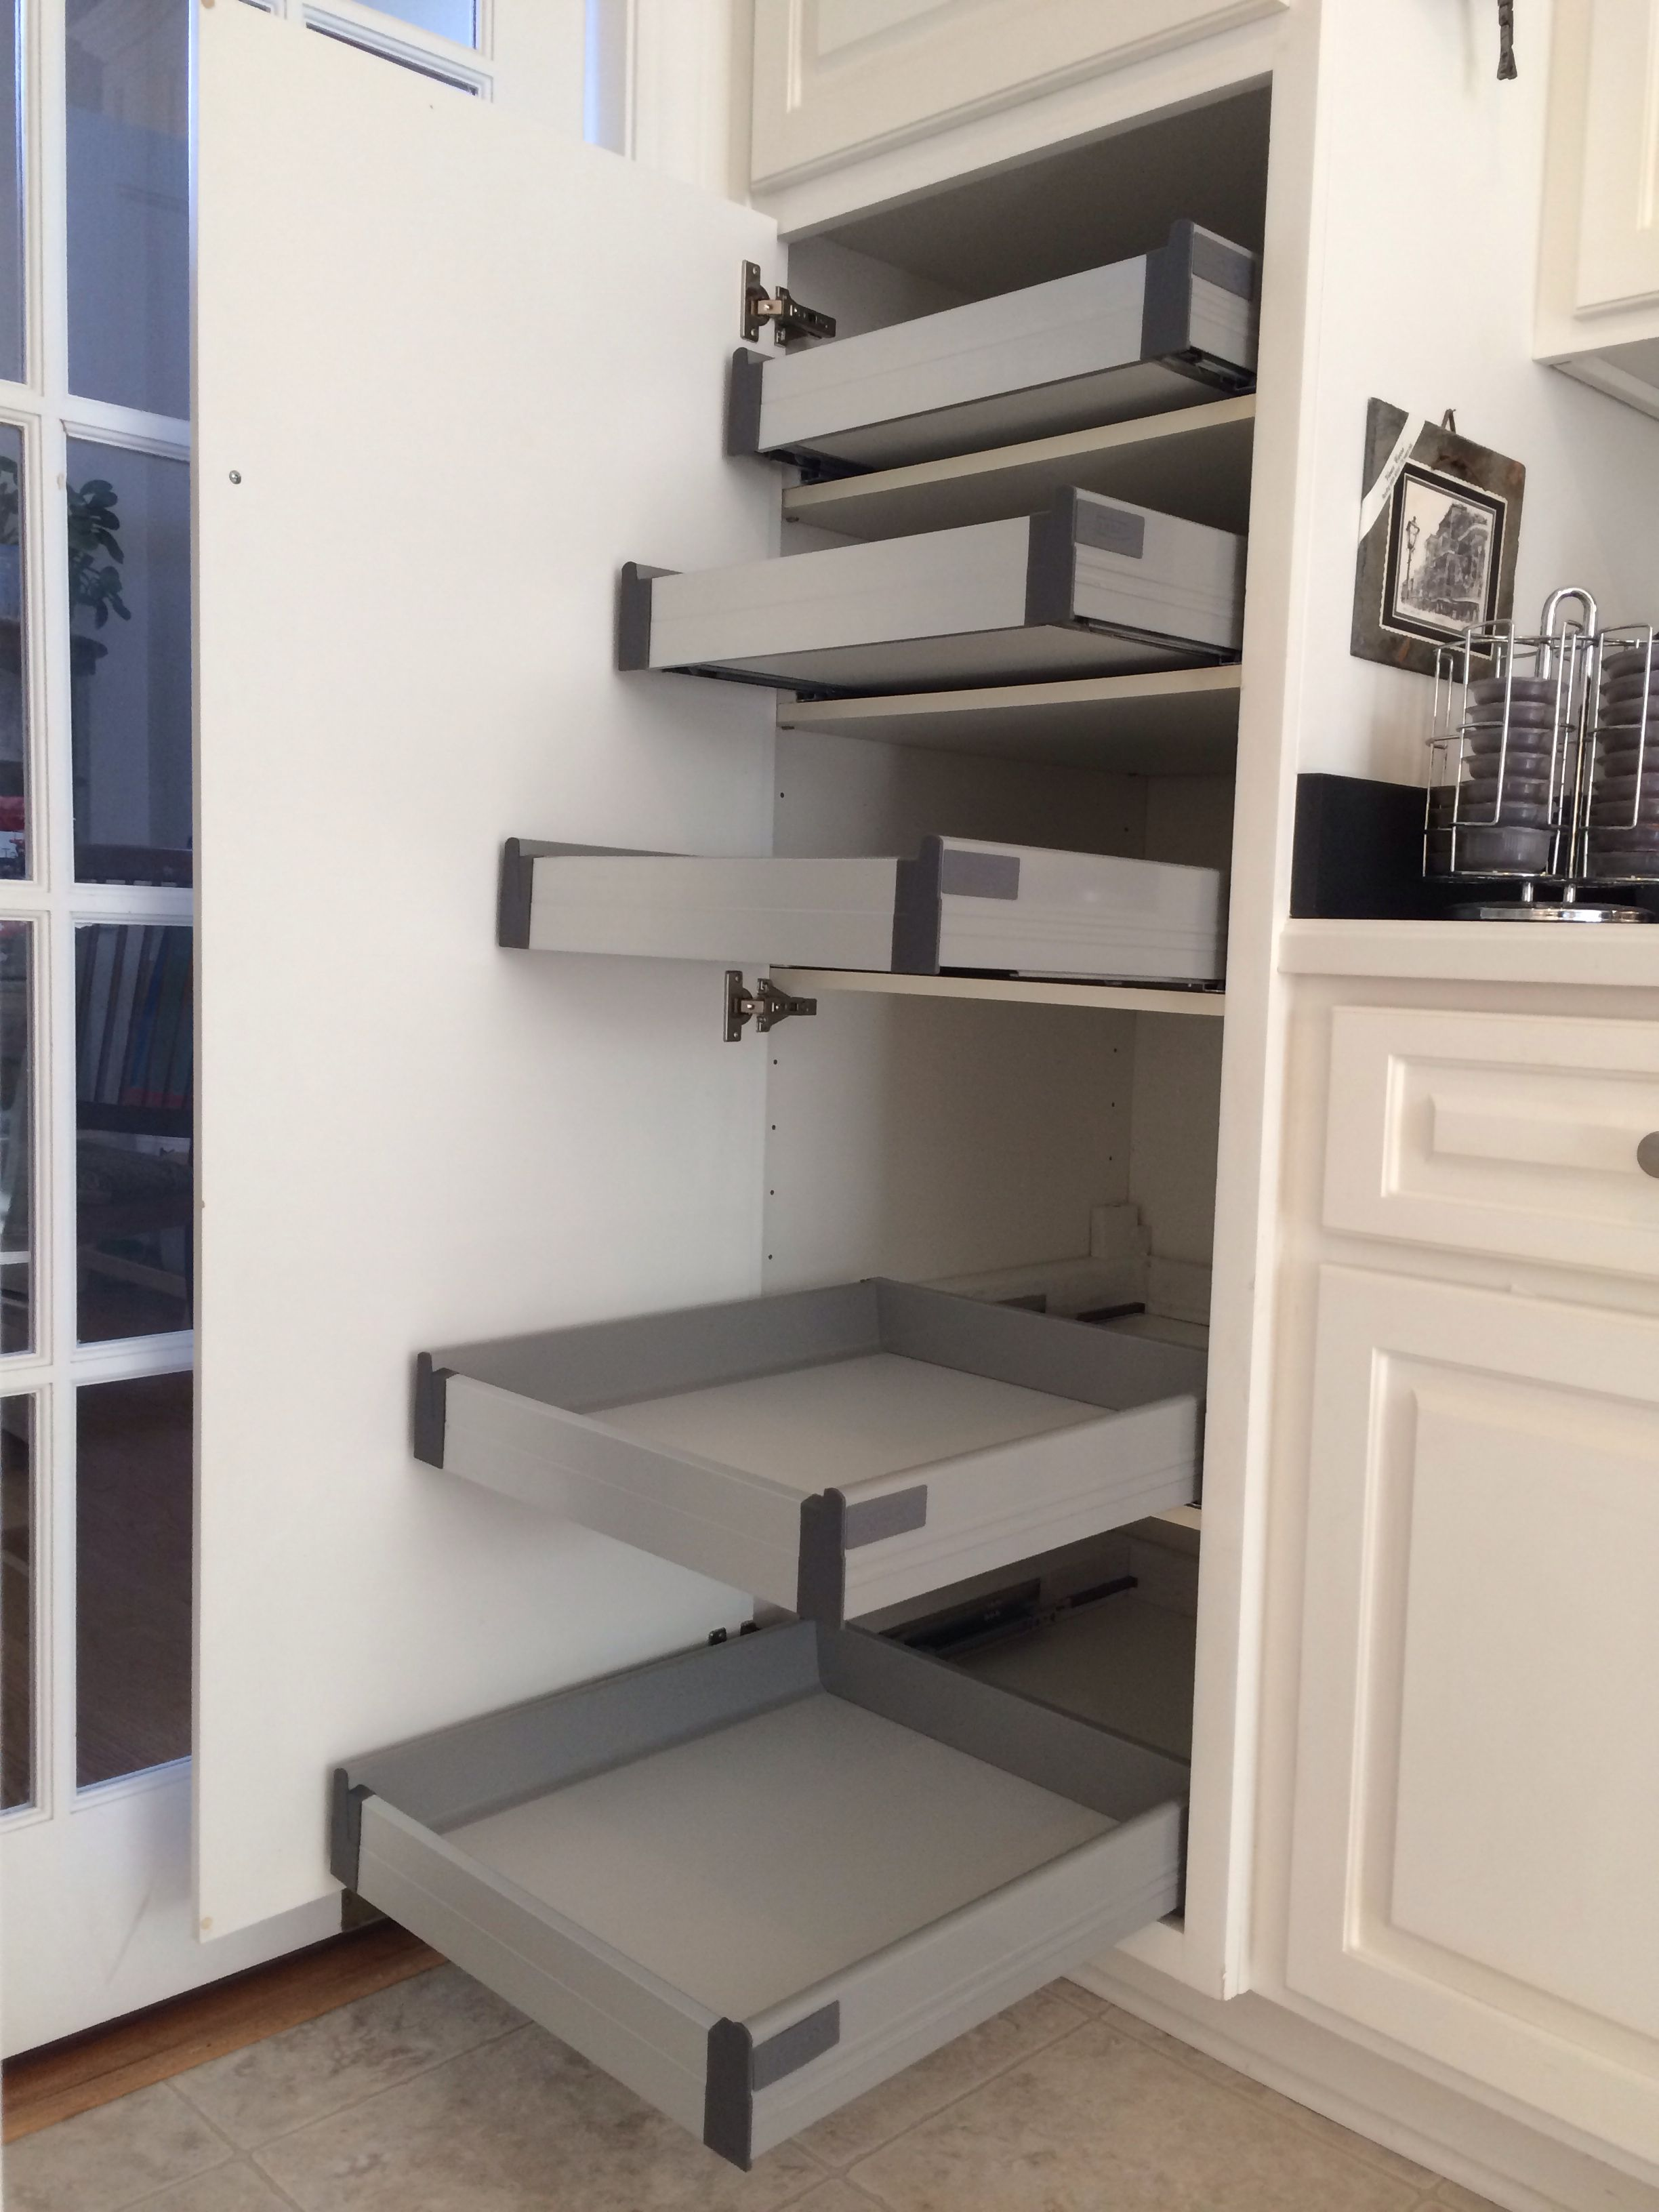 Ikea Rationell Pull Out Shelves W Dampers Retrofitted